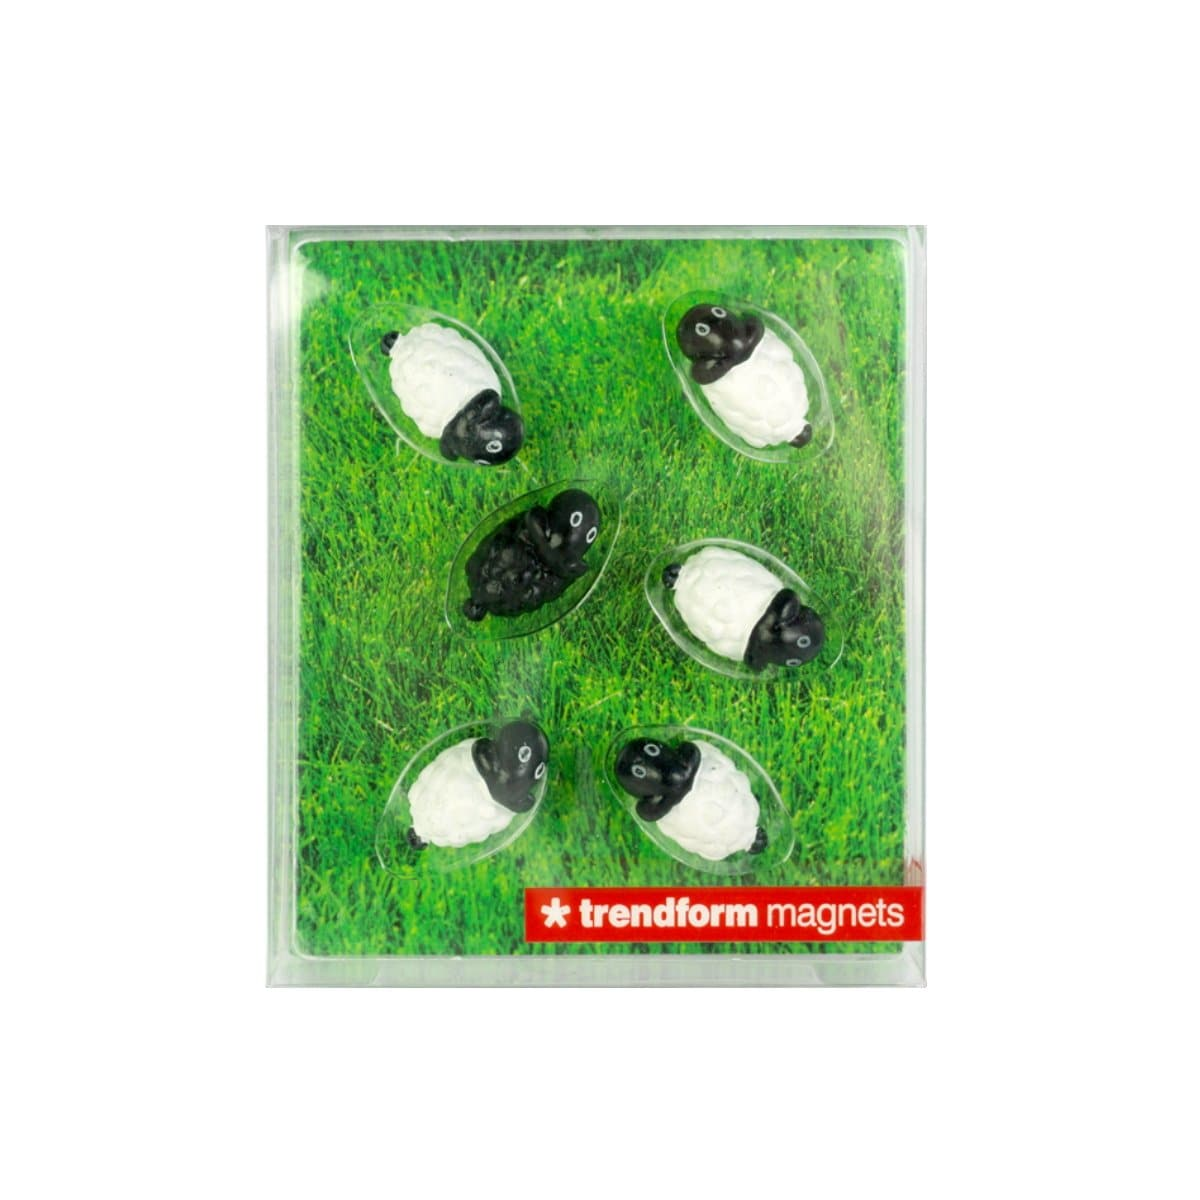 Trendform Magnets SHEEP, Set of 6, White/Black